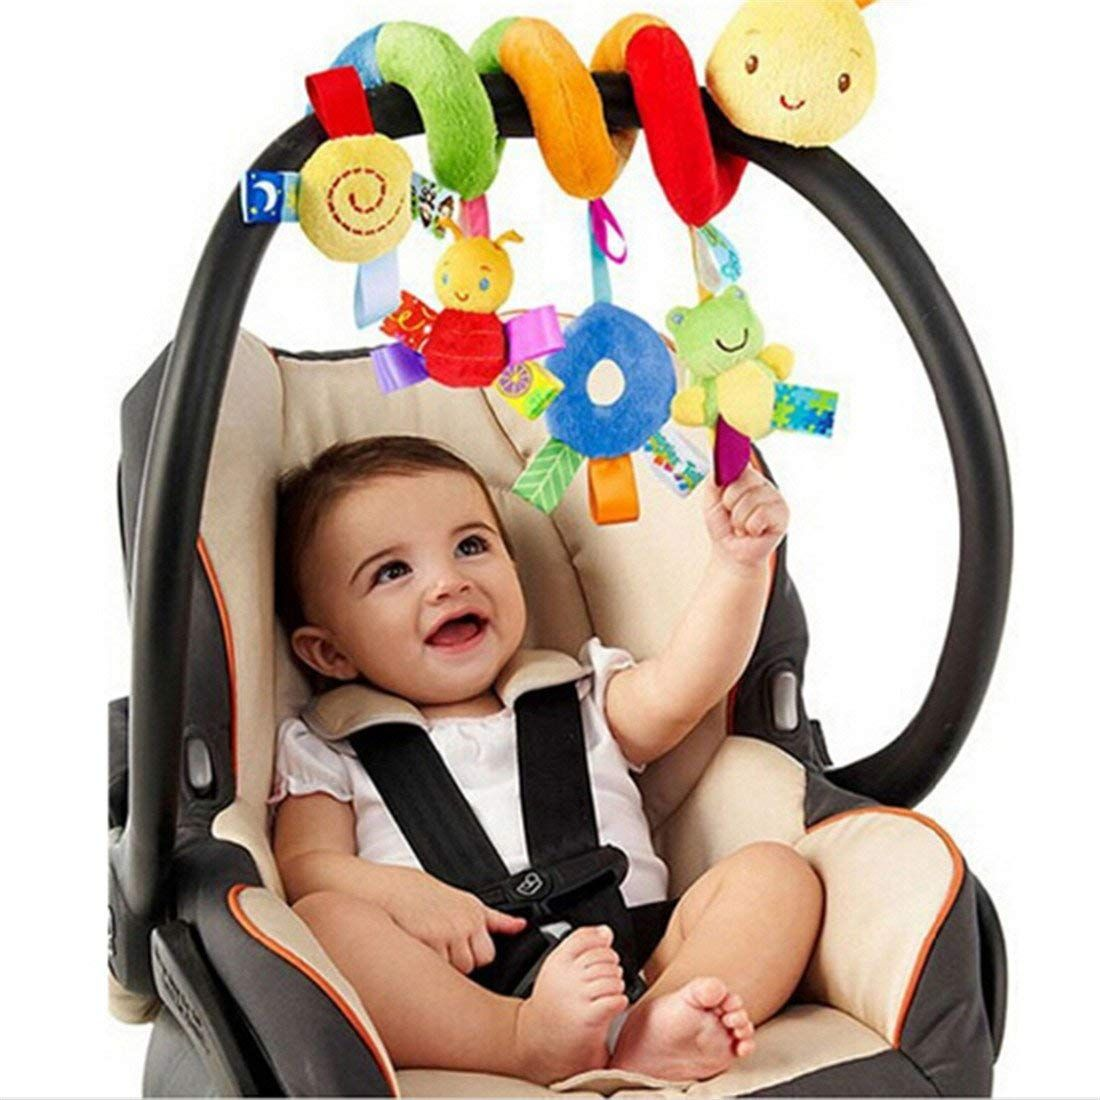 Uteruik Hanging Toys Early Development Baby Toy For Babys Car Seat or Stroller